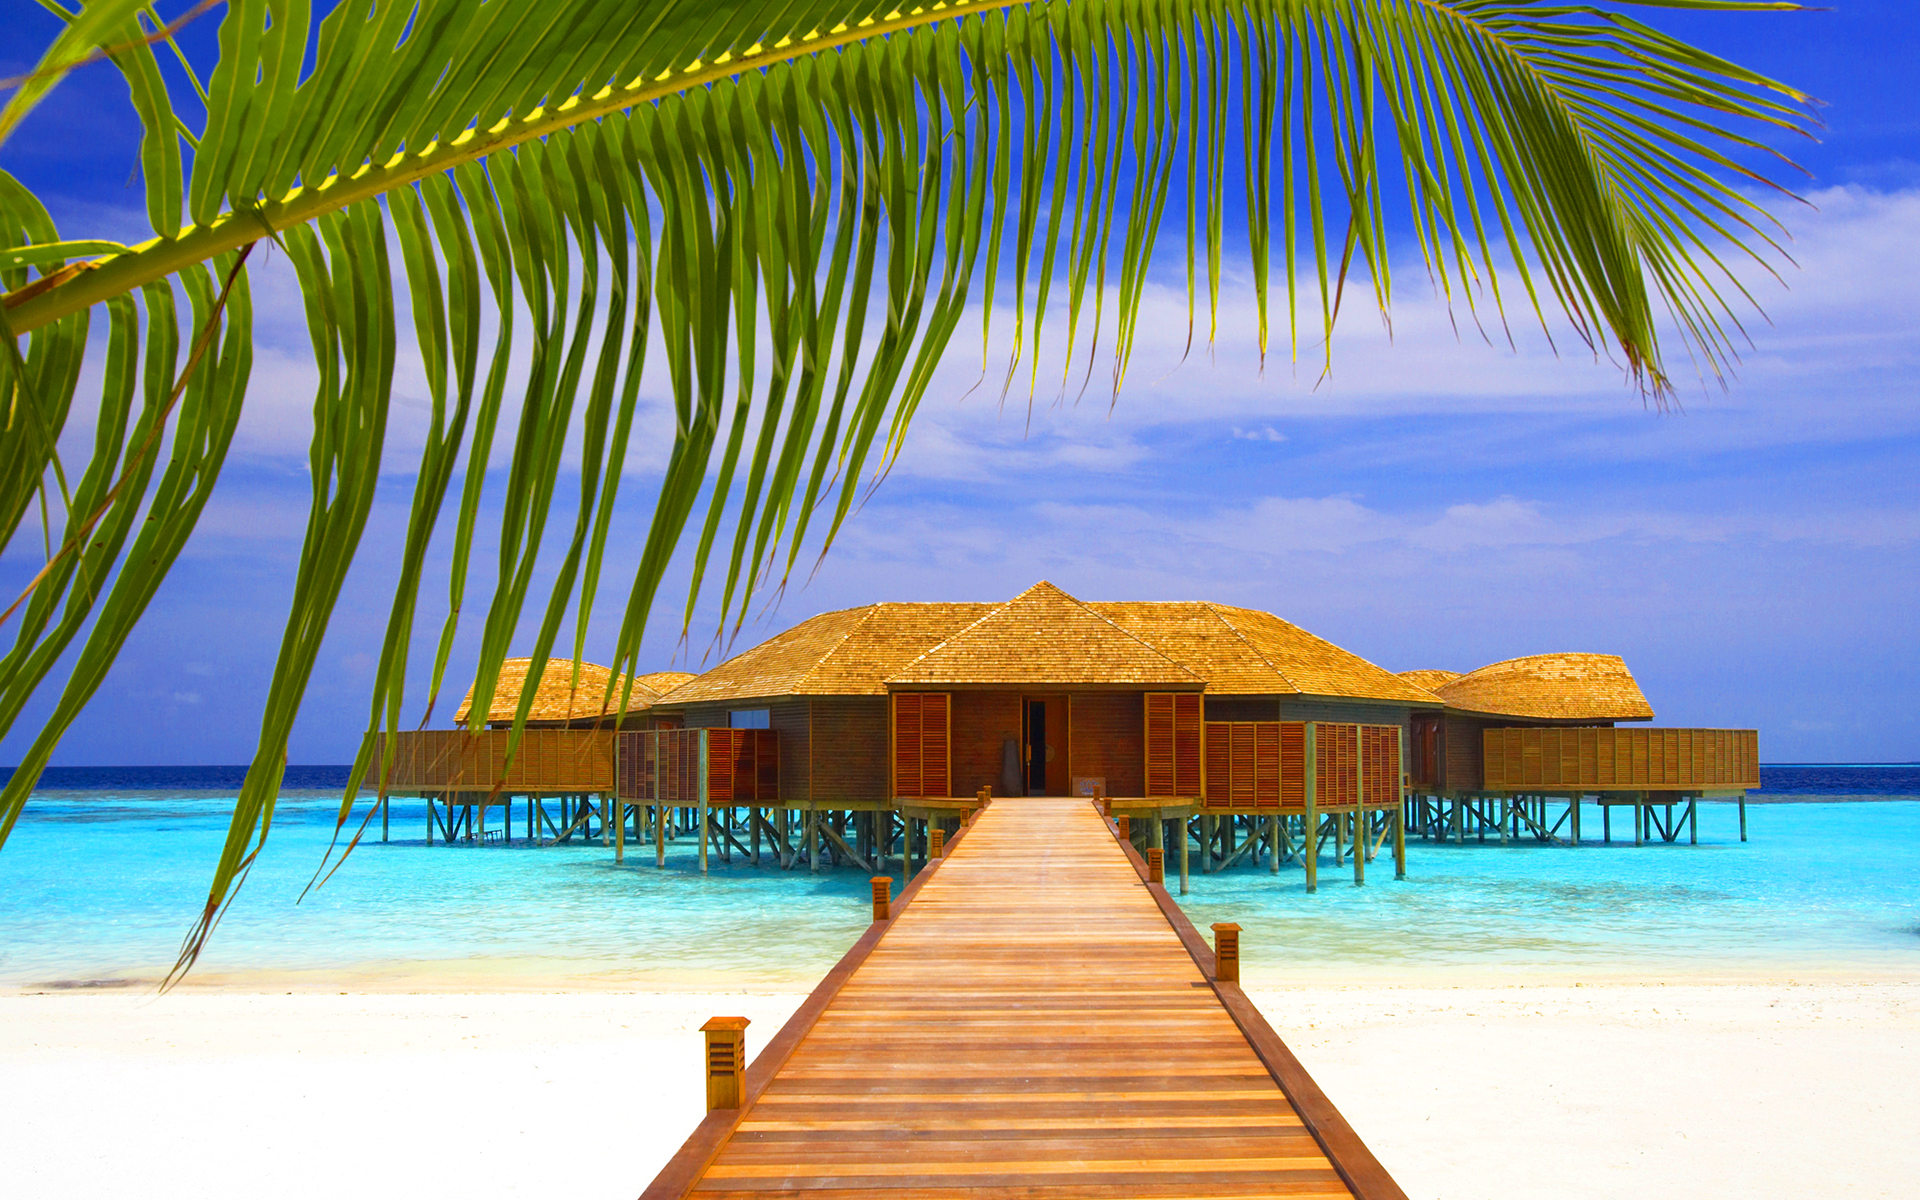 Beach spa Wallpapers Pictures Photos Images. «